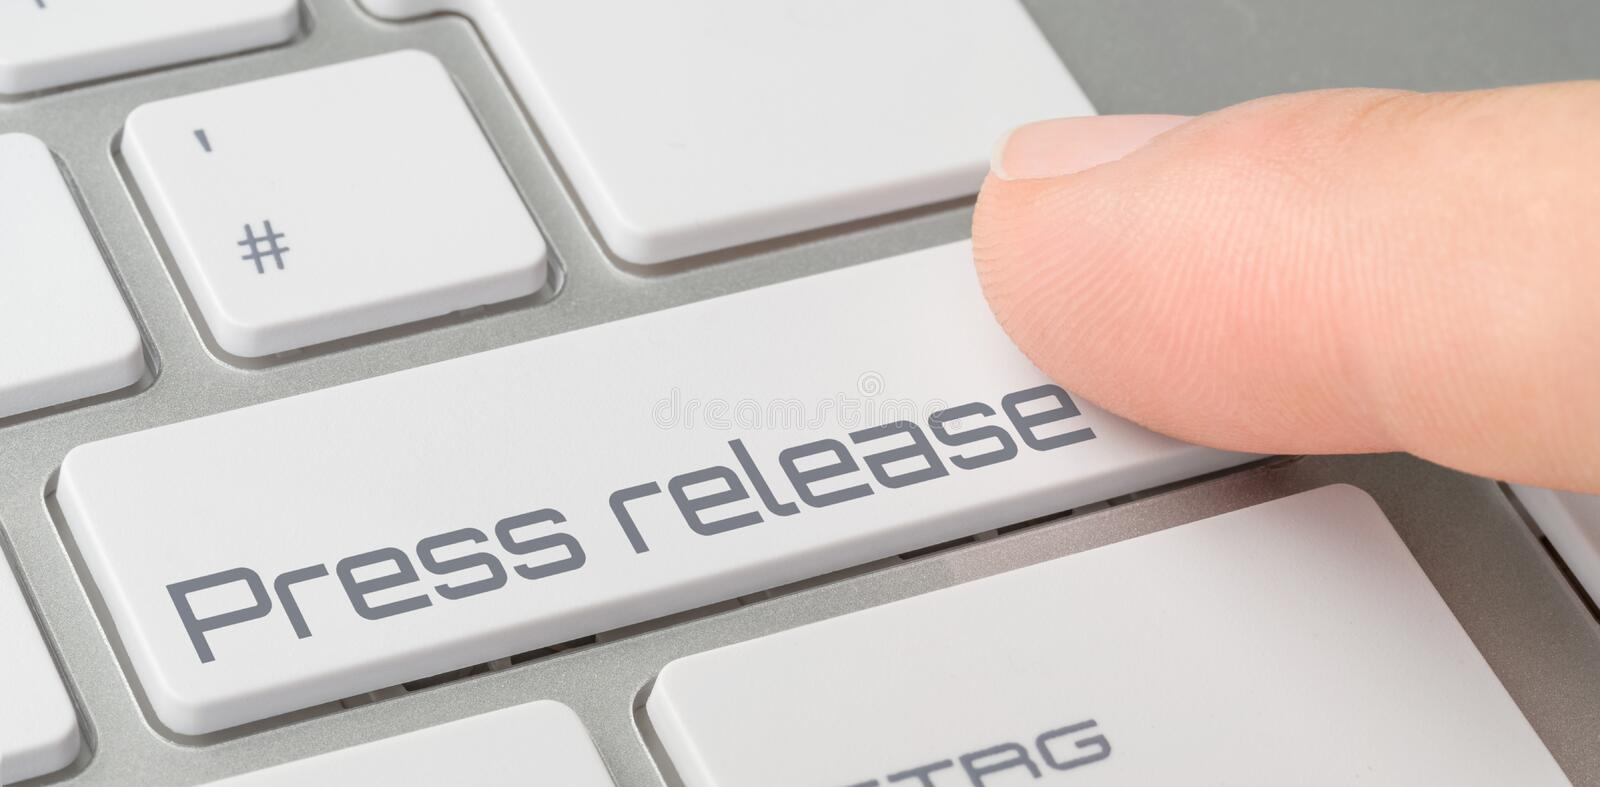 Keyboard with a labeled button - Press release stock images